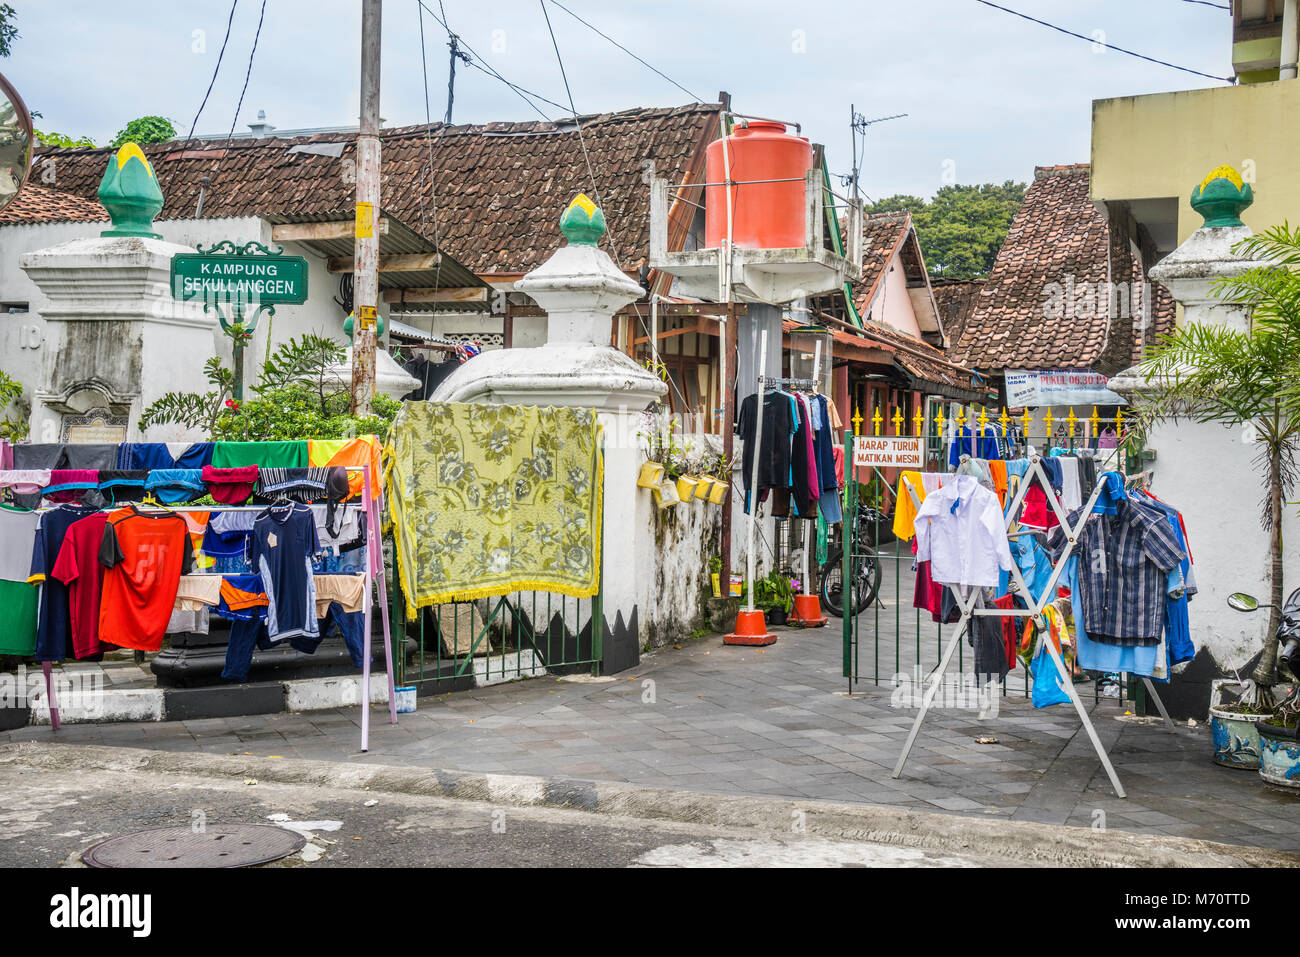 laundry day in Kampung Segullanggan in the Kraton neighbourhood of Yogyakarta, Central Java, Indonesia - Stock Image